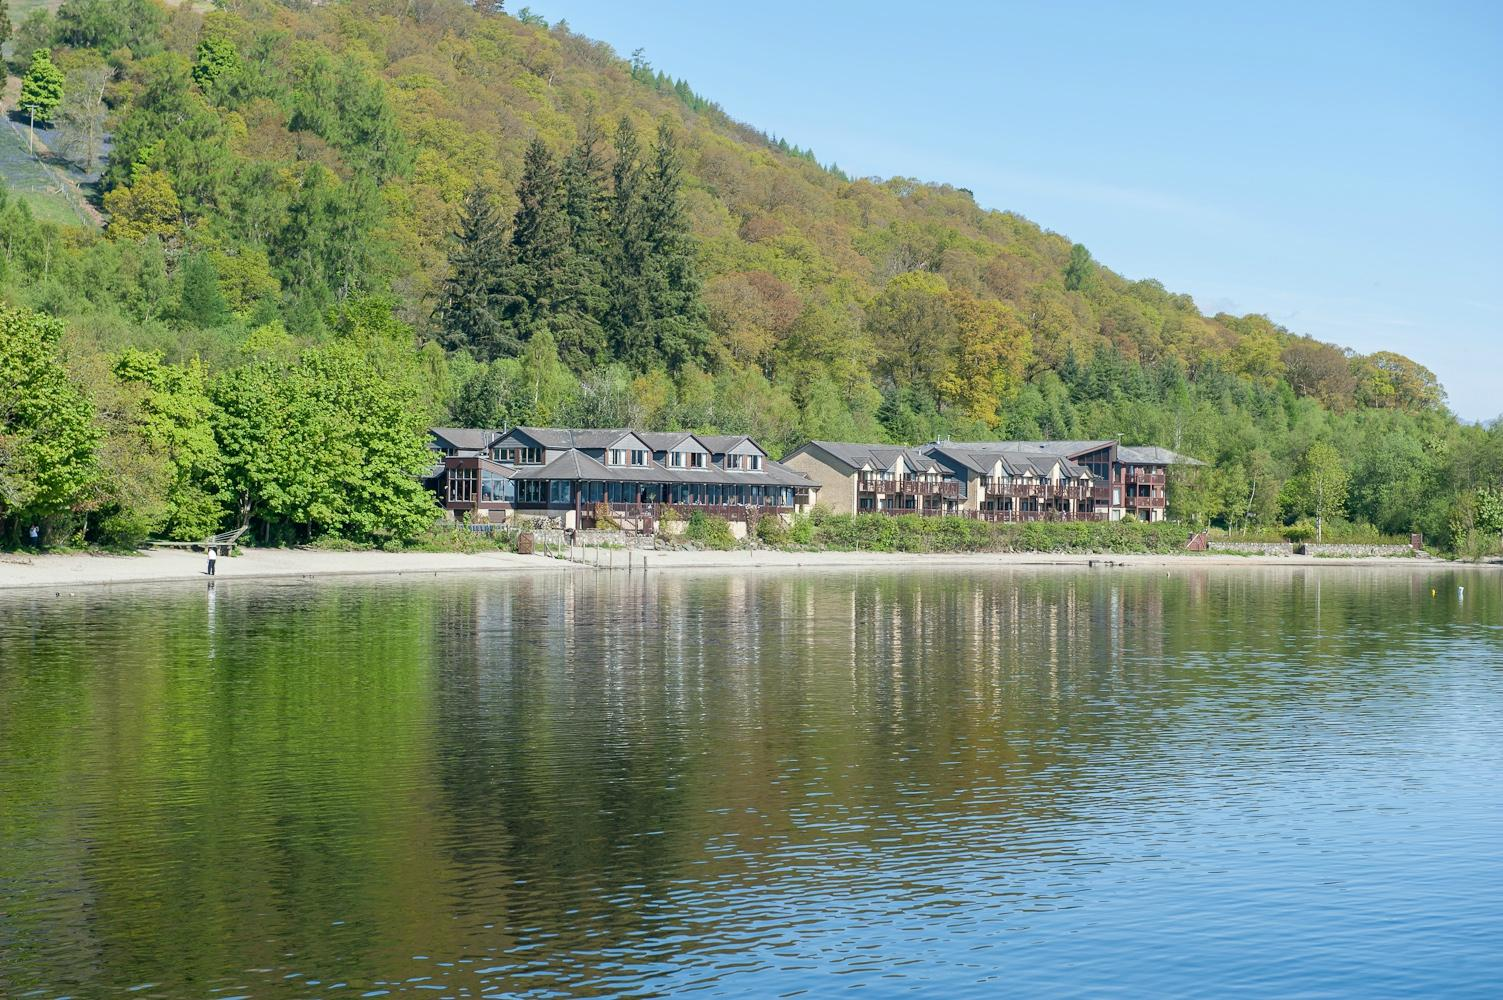 Lodge on Loch Lomond